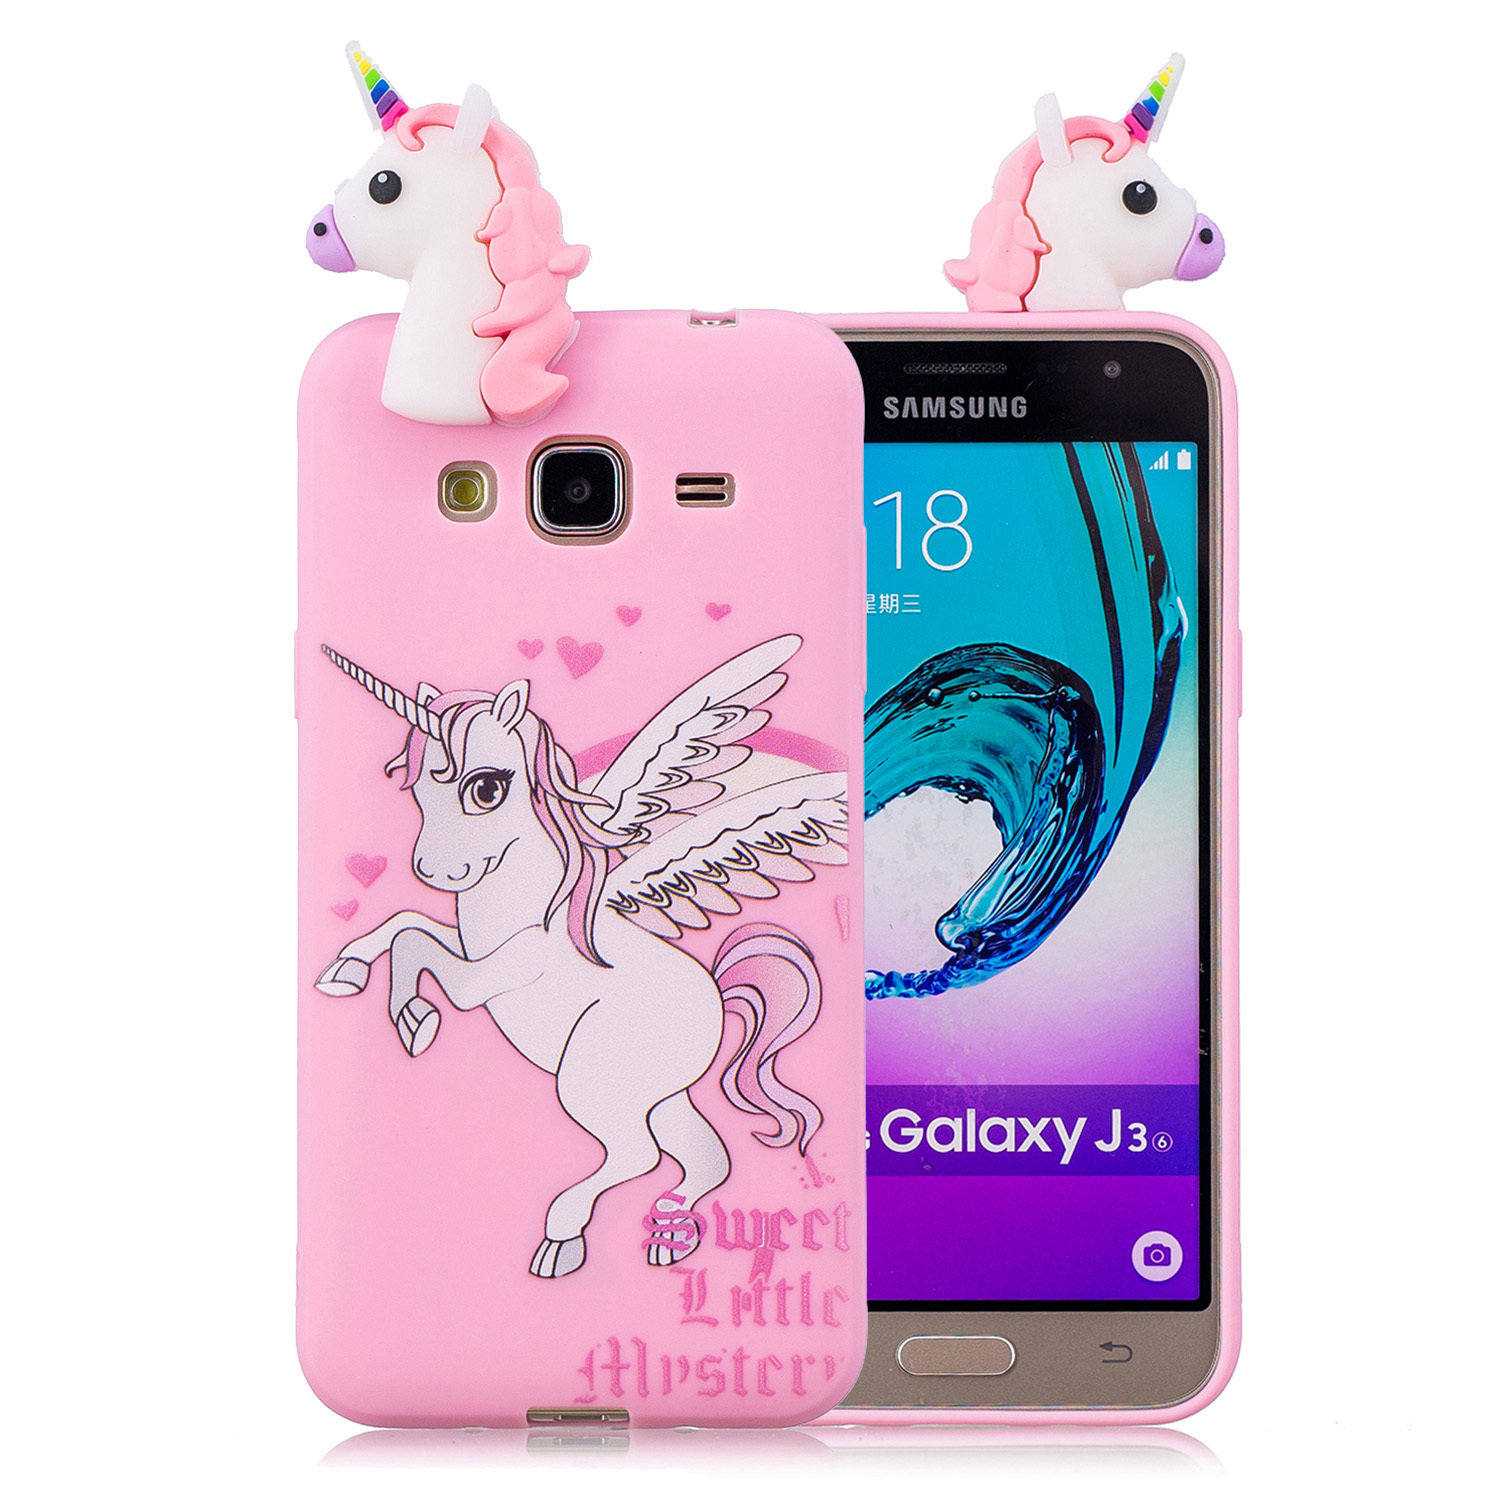 Lovely Cartoon White Squishy Phone Cases for samsung galaxy j3 2016 Case Cute Smiling Cloud Soft Silicone stress relief Cover